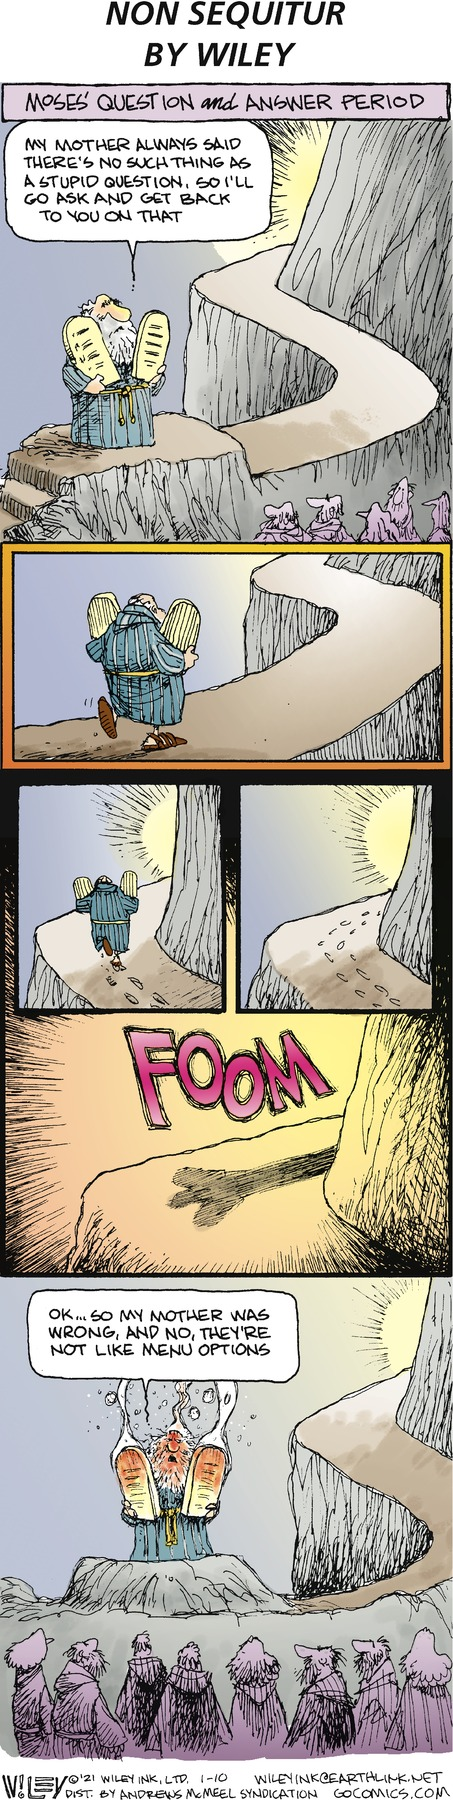 Non Sequitur Comic Strip for January 10, 2021